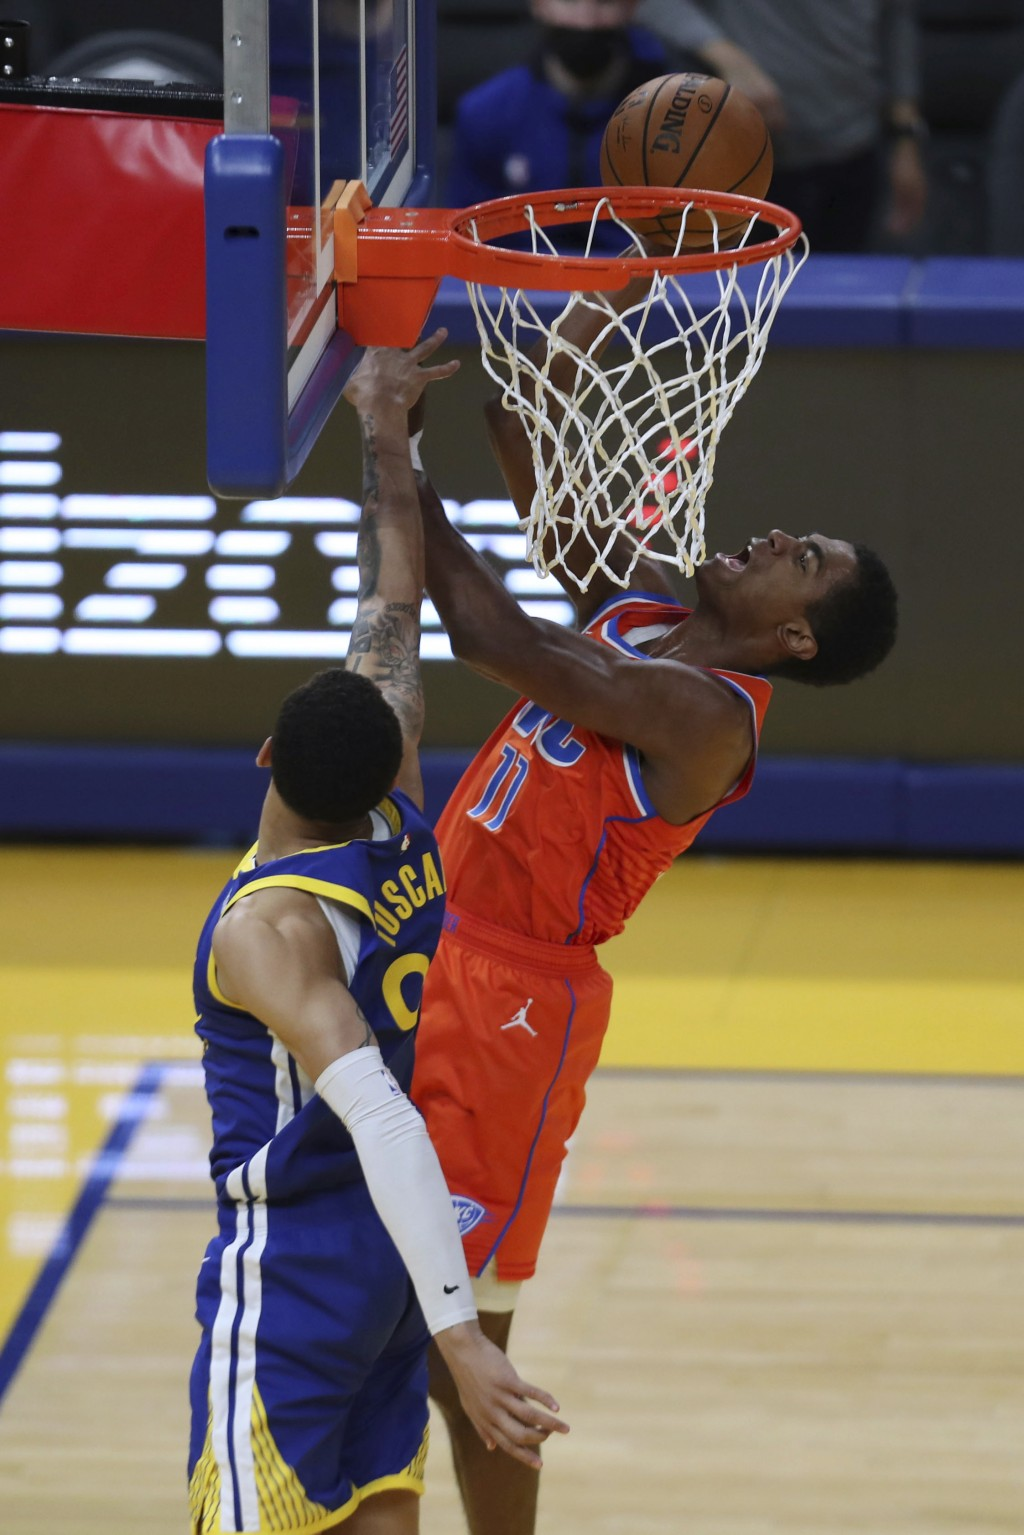 Oklahoma City Thunder's Théo Maledon, right, shoots against Golden State Warriors' Juan Toscano-Anderson during the second half of an NBA basketball g...